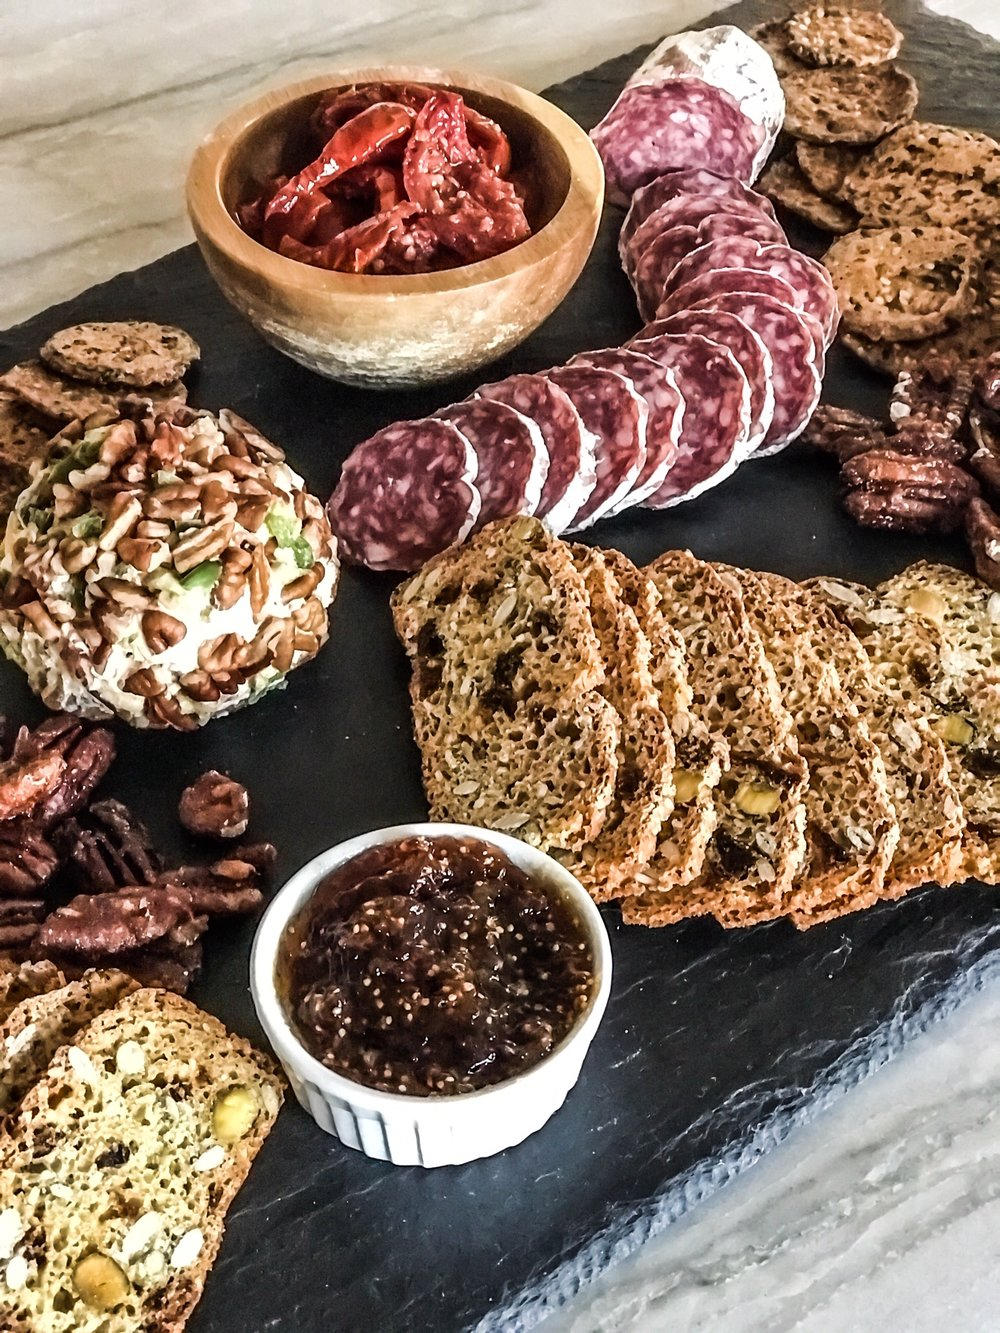 How To Create A Charcuterie Board For A New Year's Eve Party. Appetizer ideas for New Year's Eve Party. Meat And Cheese Appetizer Board. Unique products from Whole Foods Market For Your Holiday Party. #sponsored #LowKeyNYE #MakesMeWhole #Whole #Foods